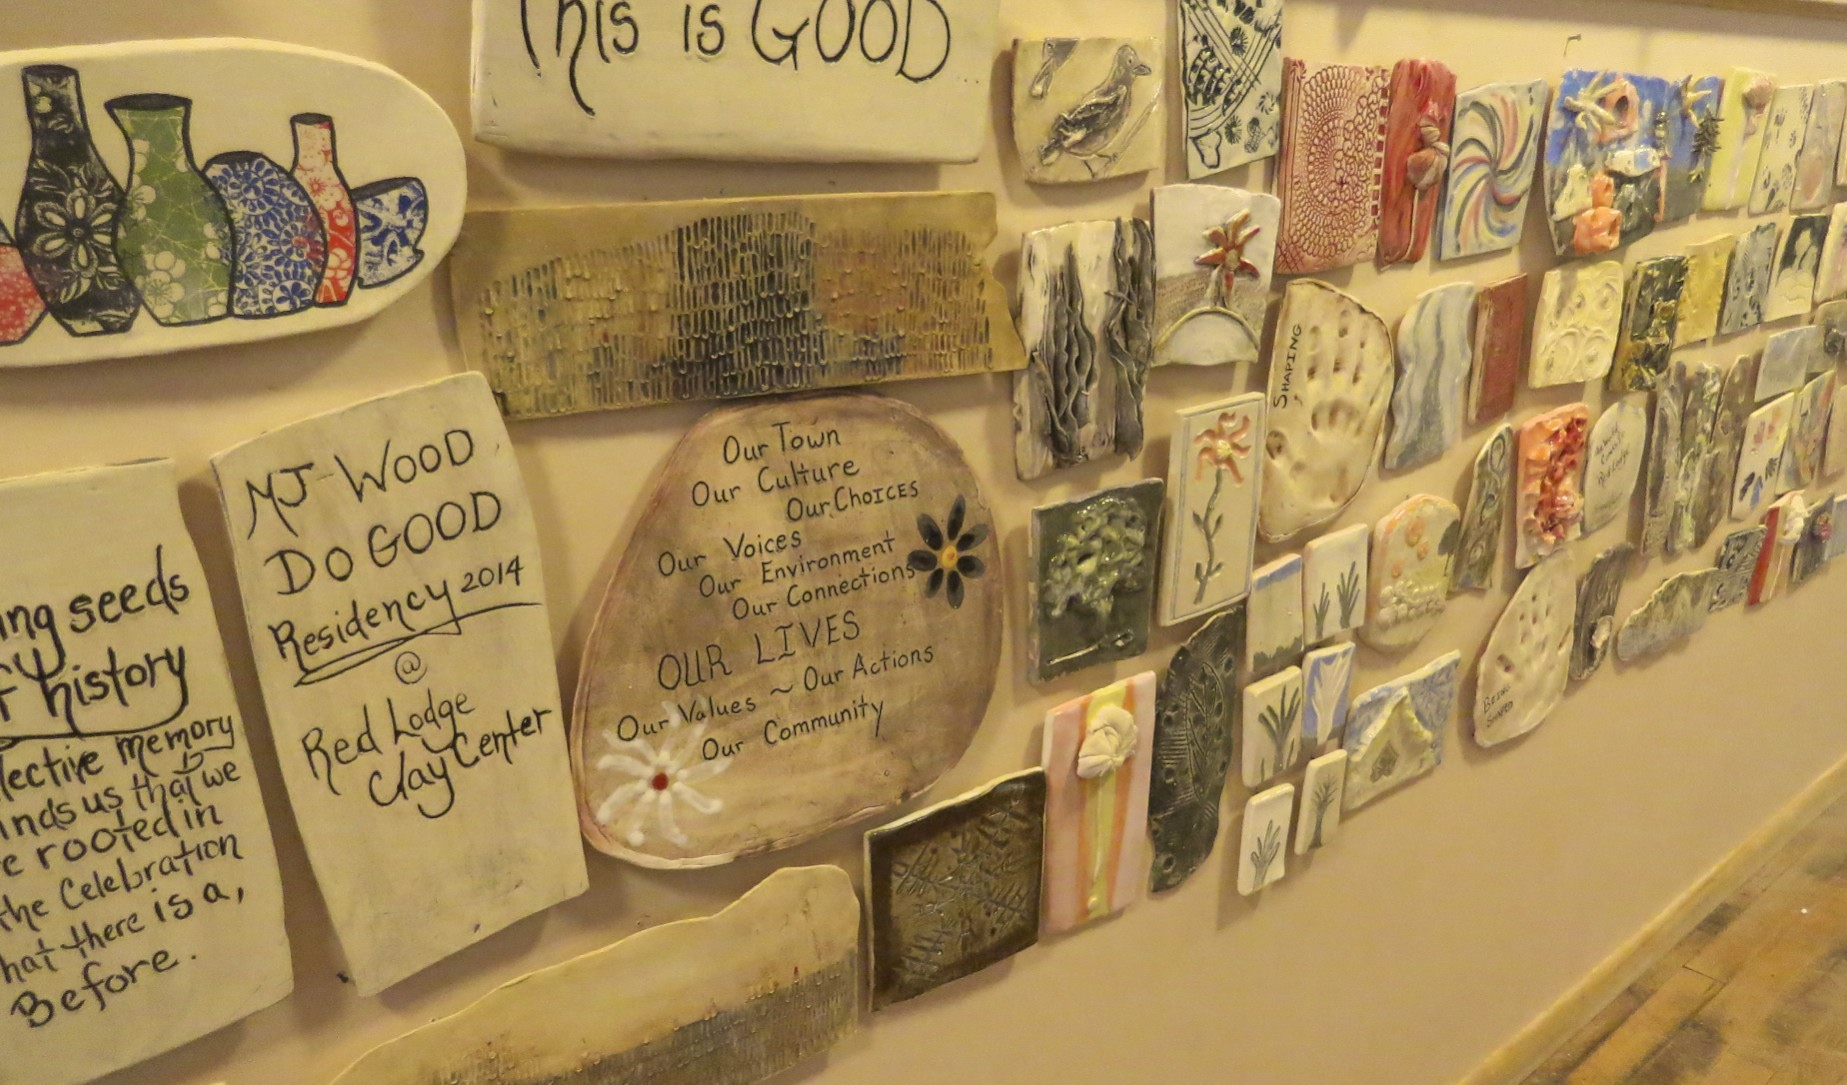 Red Lodge Clay Center, Community Clay Quilt, Workshop, MJ Wood DO-GOOD Residency